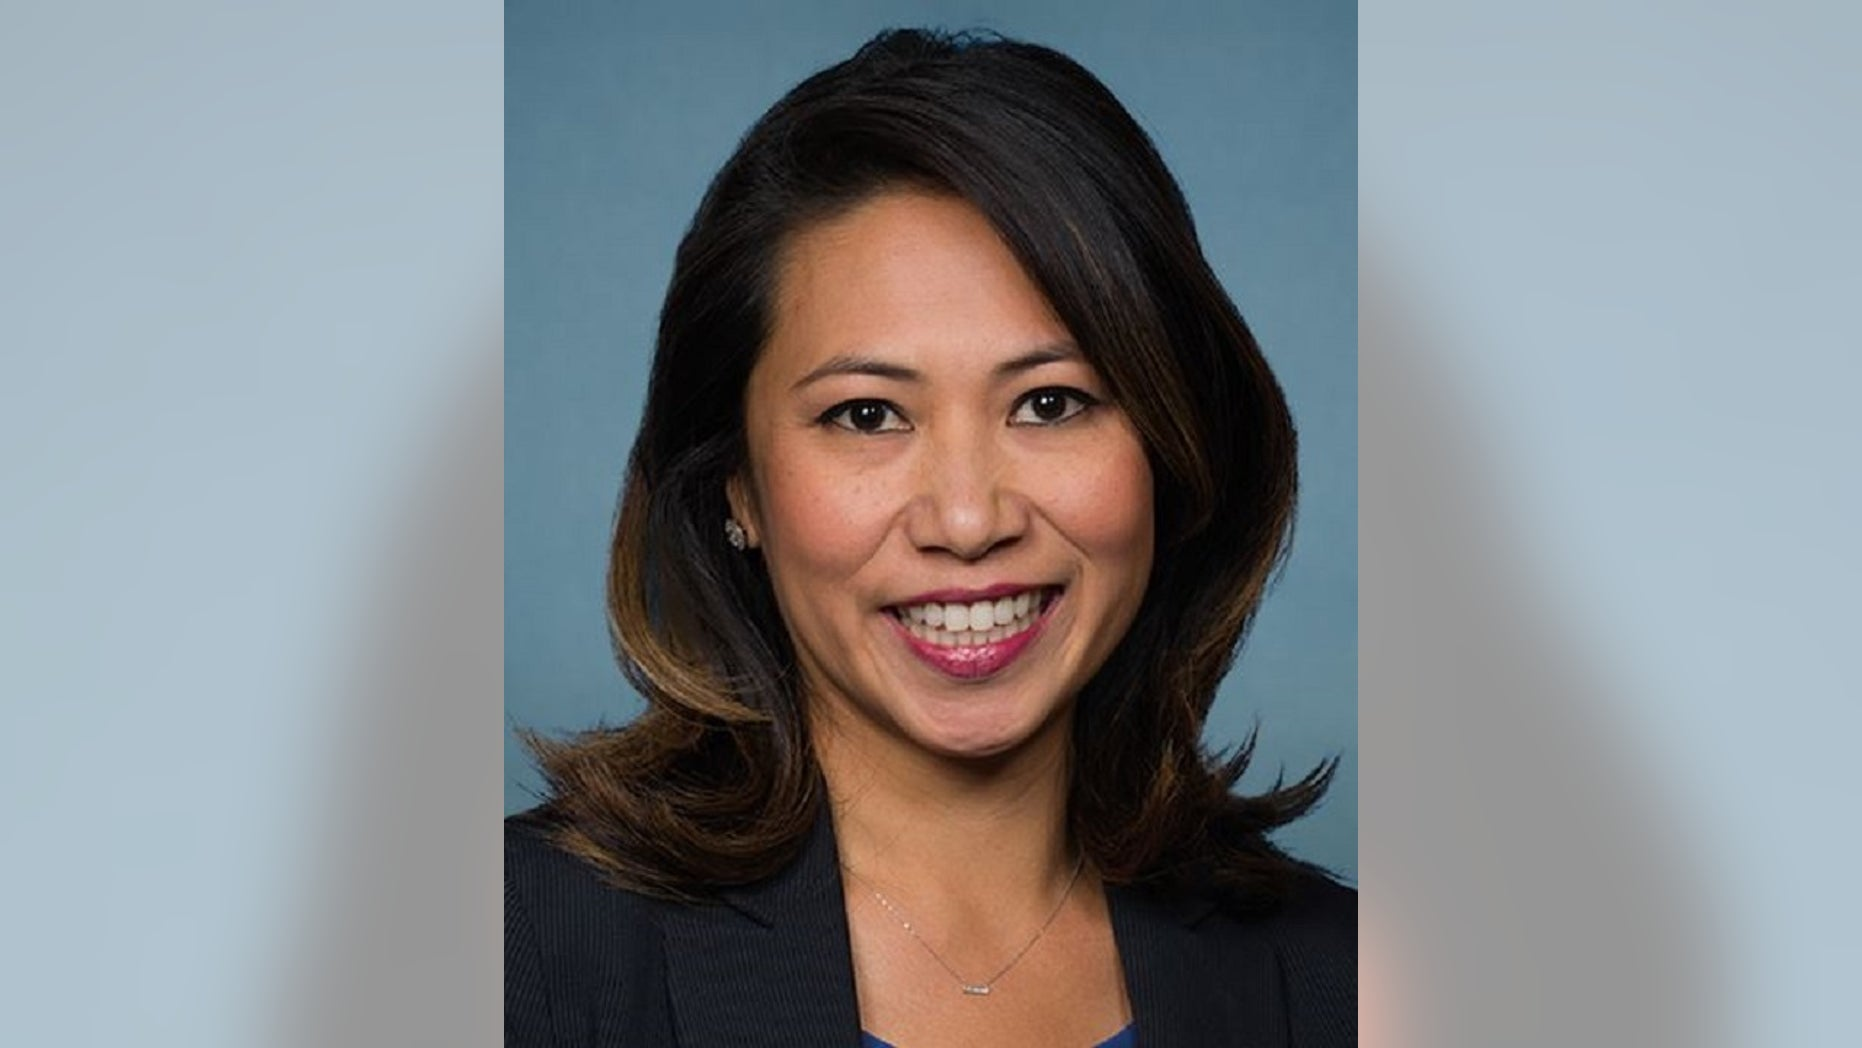 Rep. Stephanie Murphy, D-Fla., she was offended that socialism is being talked about in such a casual way during a speech Tuesday.